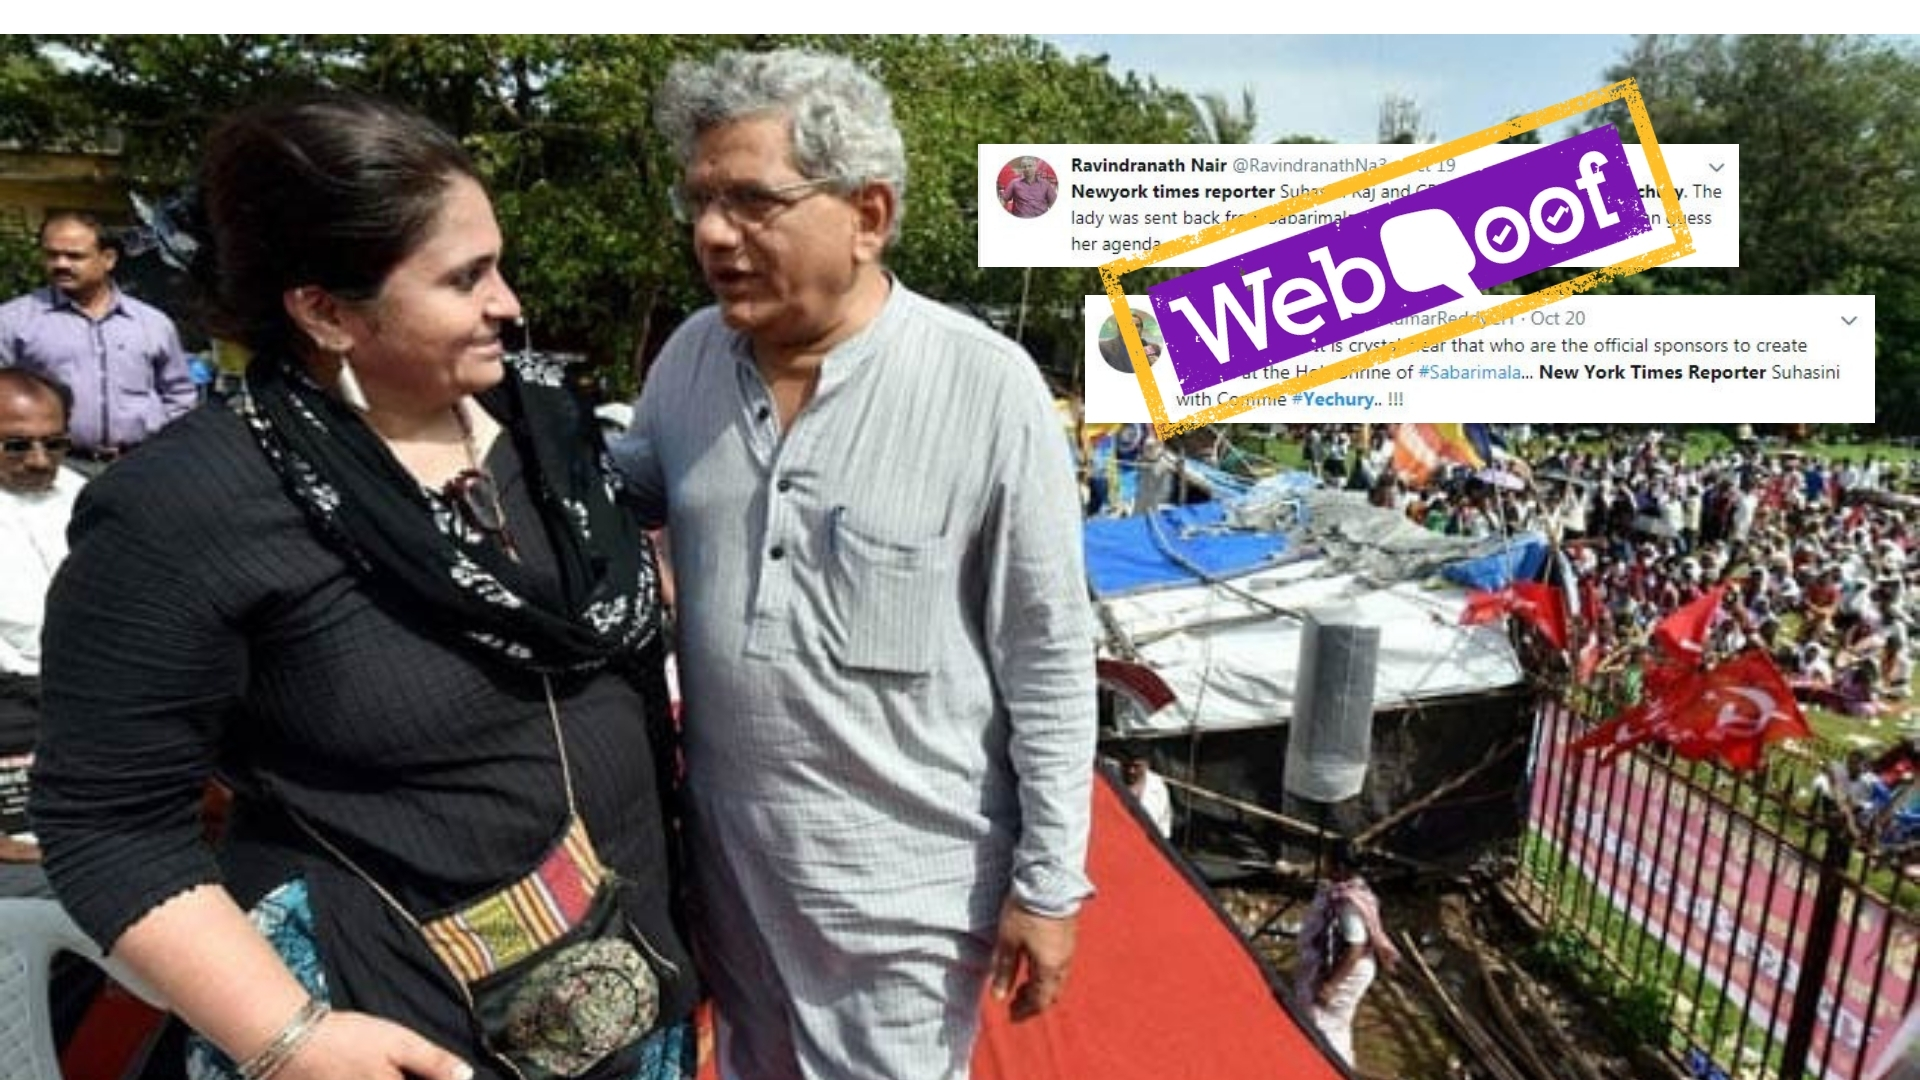 Woman in Photo Not NYT Reporter With Sitaram Yechury at Sabarimala